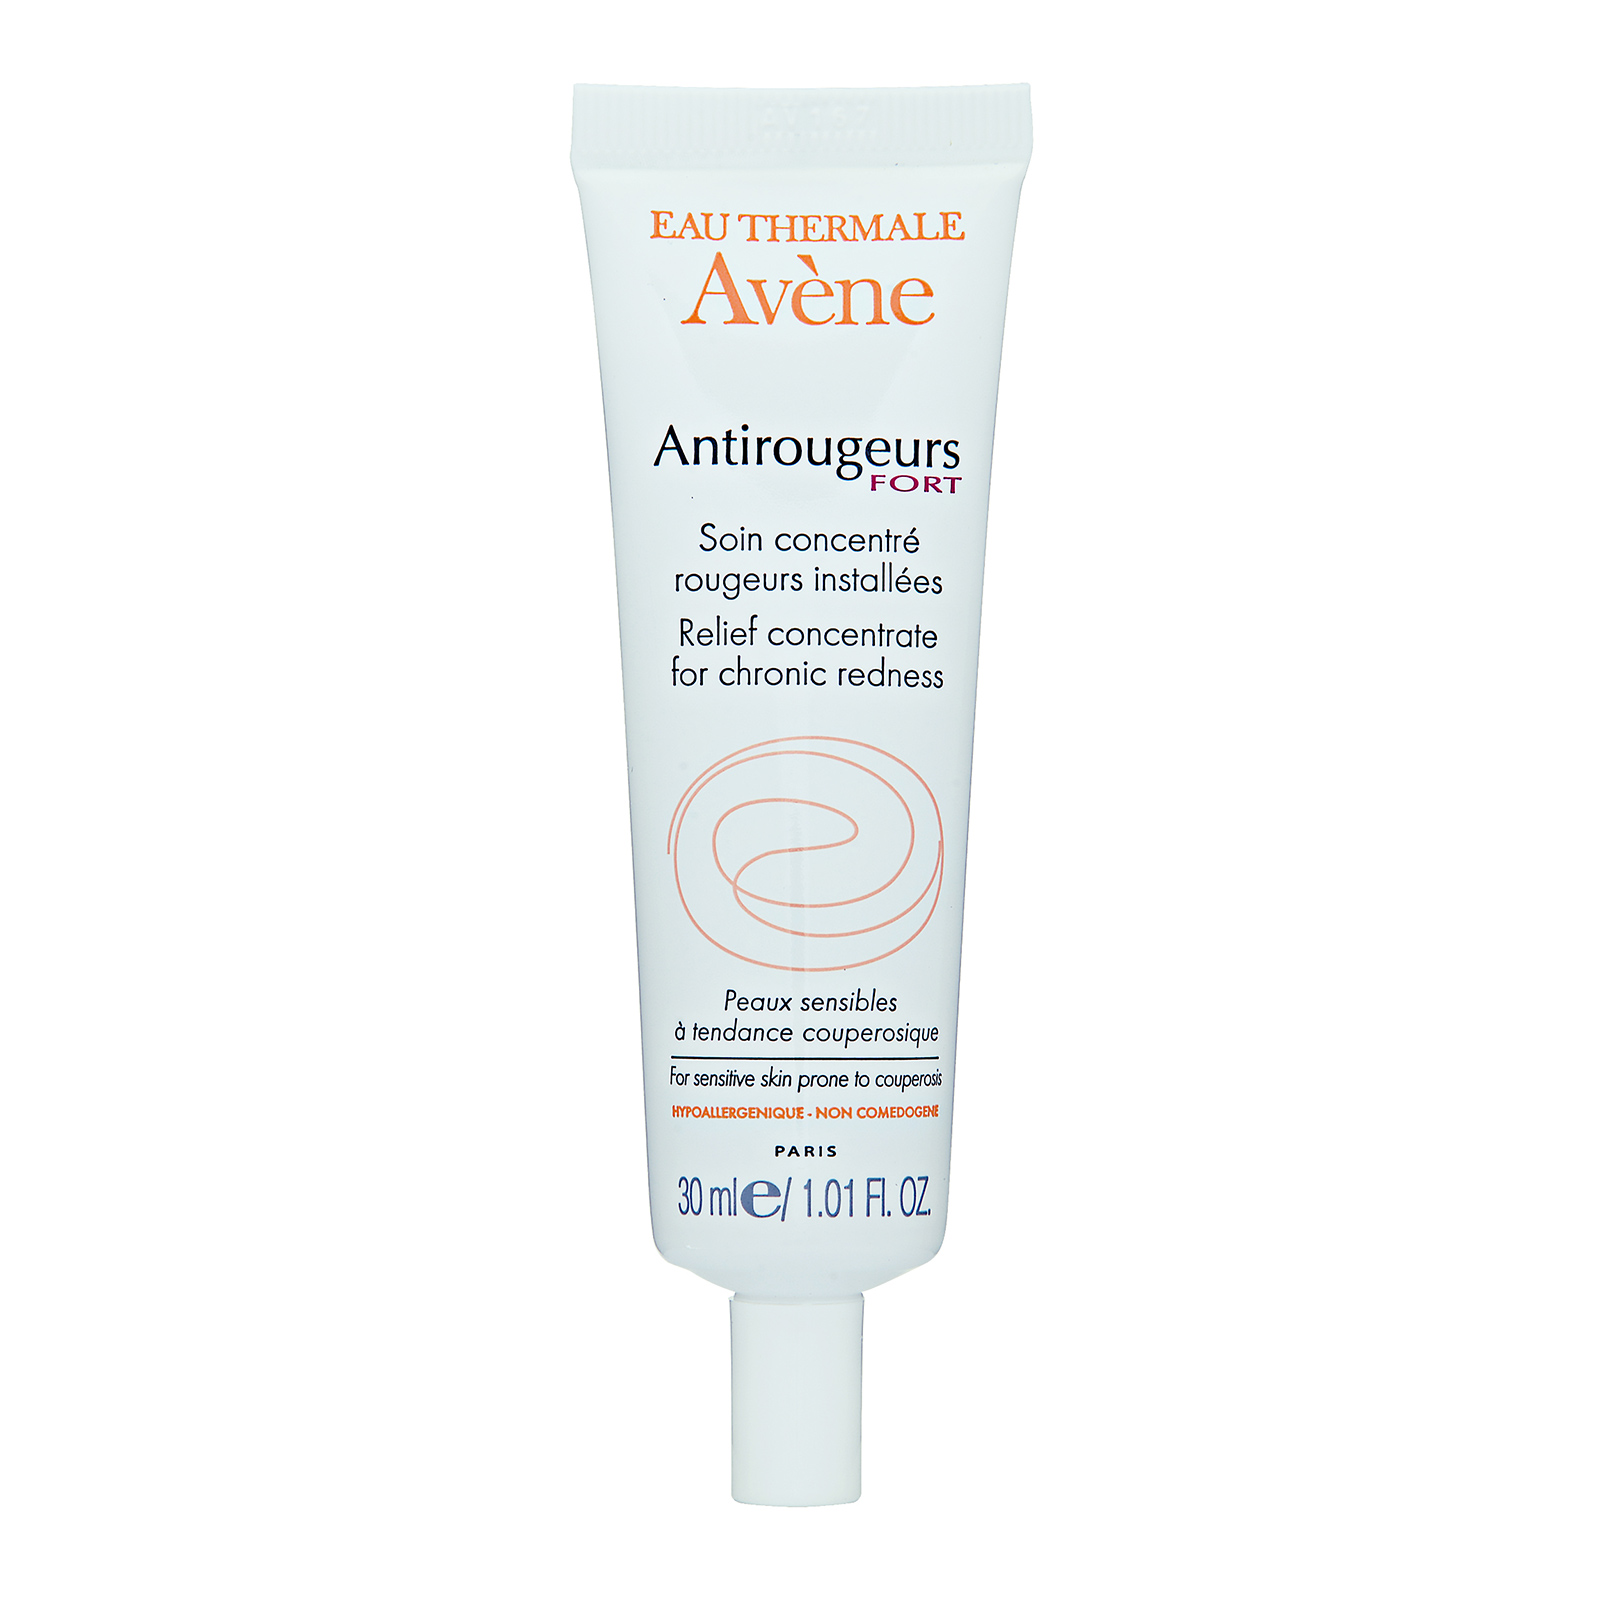 Avène Antirougeurs  Fort Relief Concentrate For Chronic Redness (For Sensitive Skin) 1.01oz, 30ml from Cosme-De.com